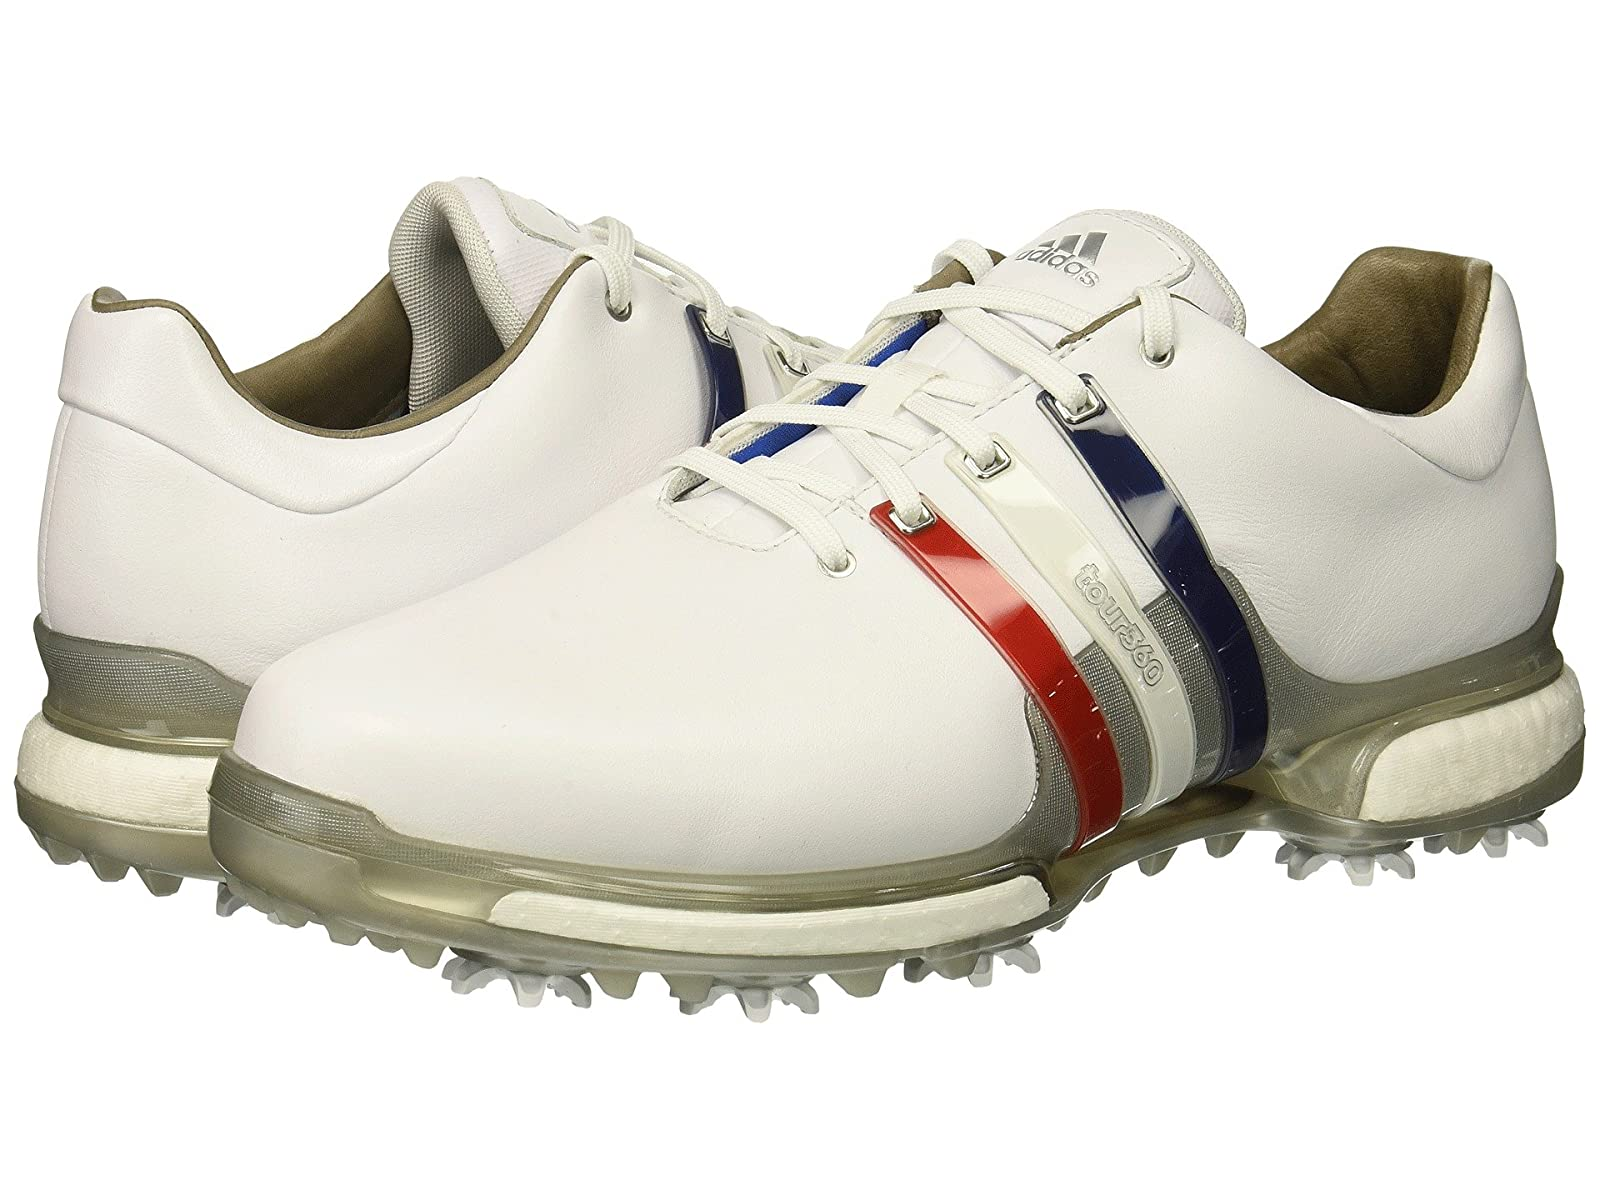 adidas Golf Tour360 2.0Atmospheric grades have affordable shoes